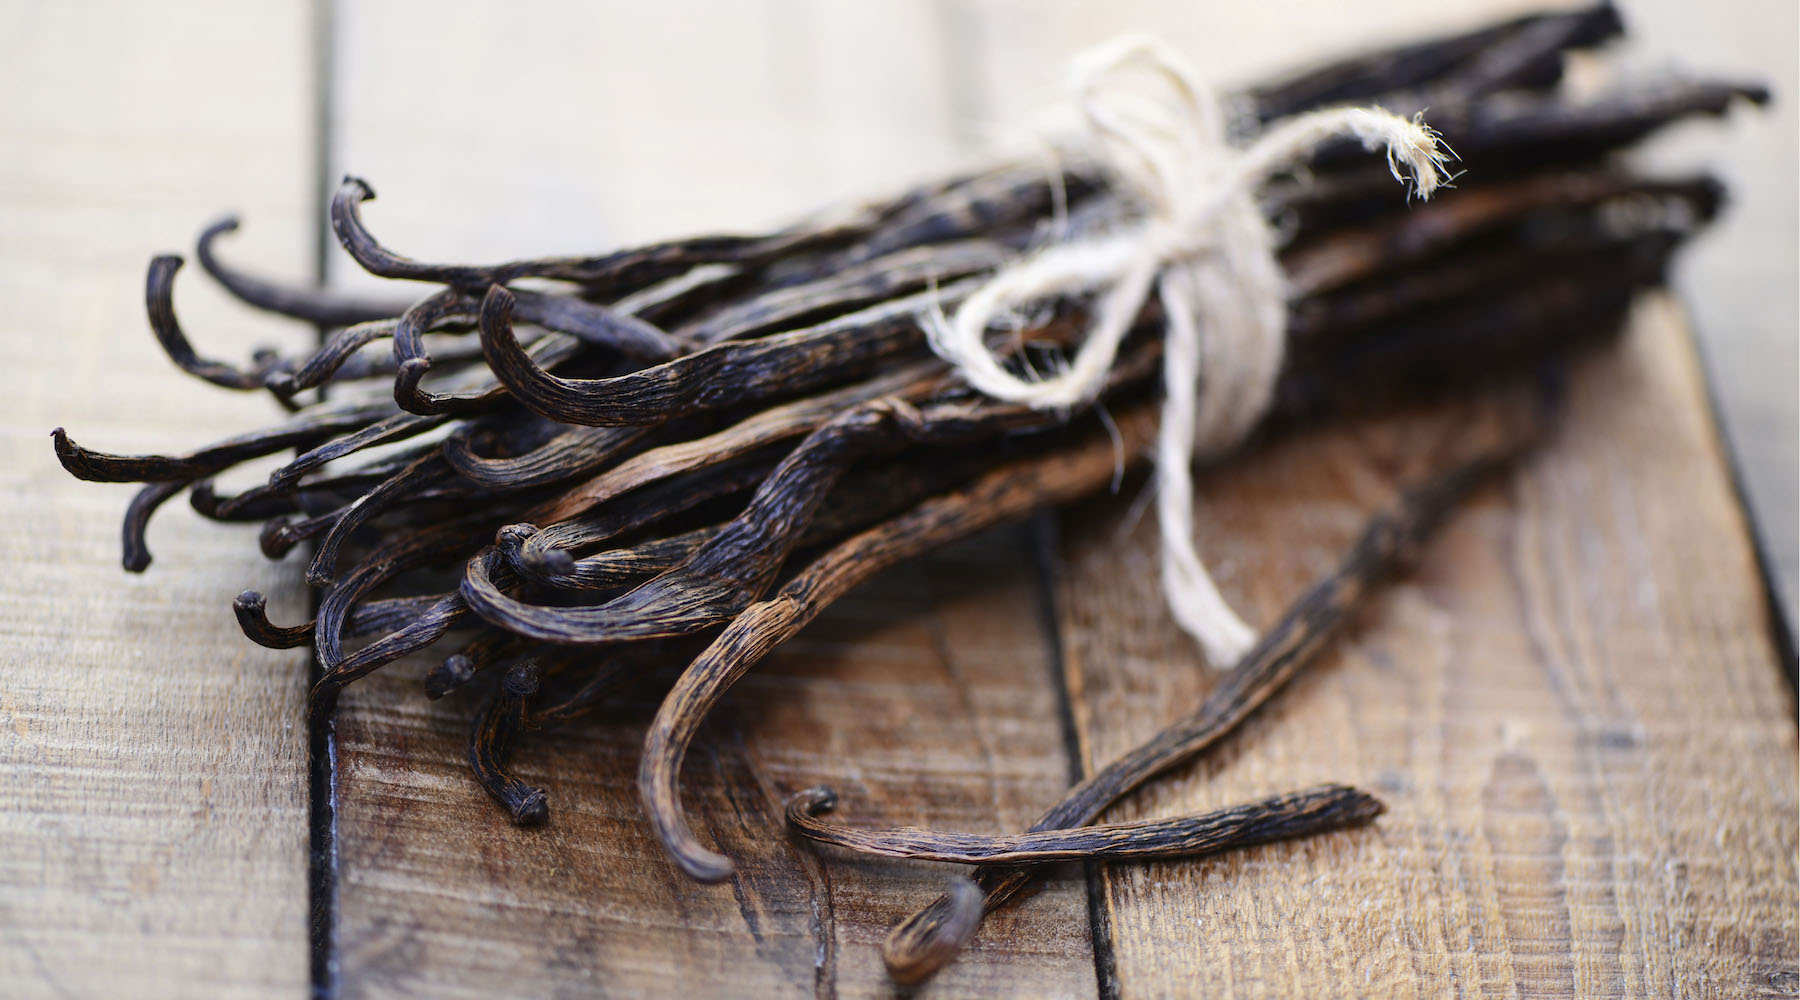 organic vanilla pods from Madagascar